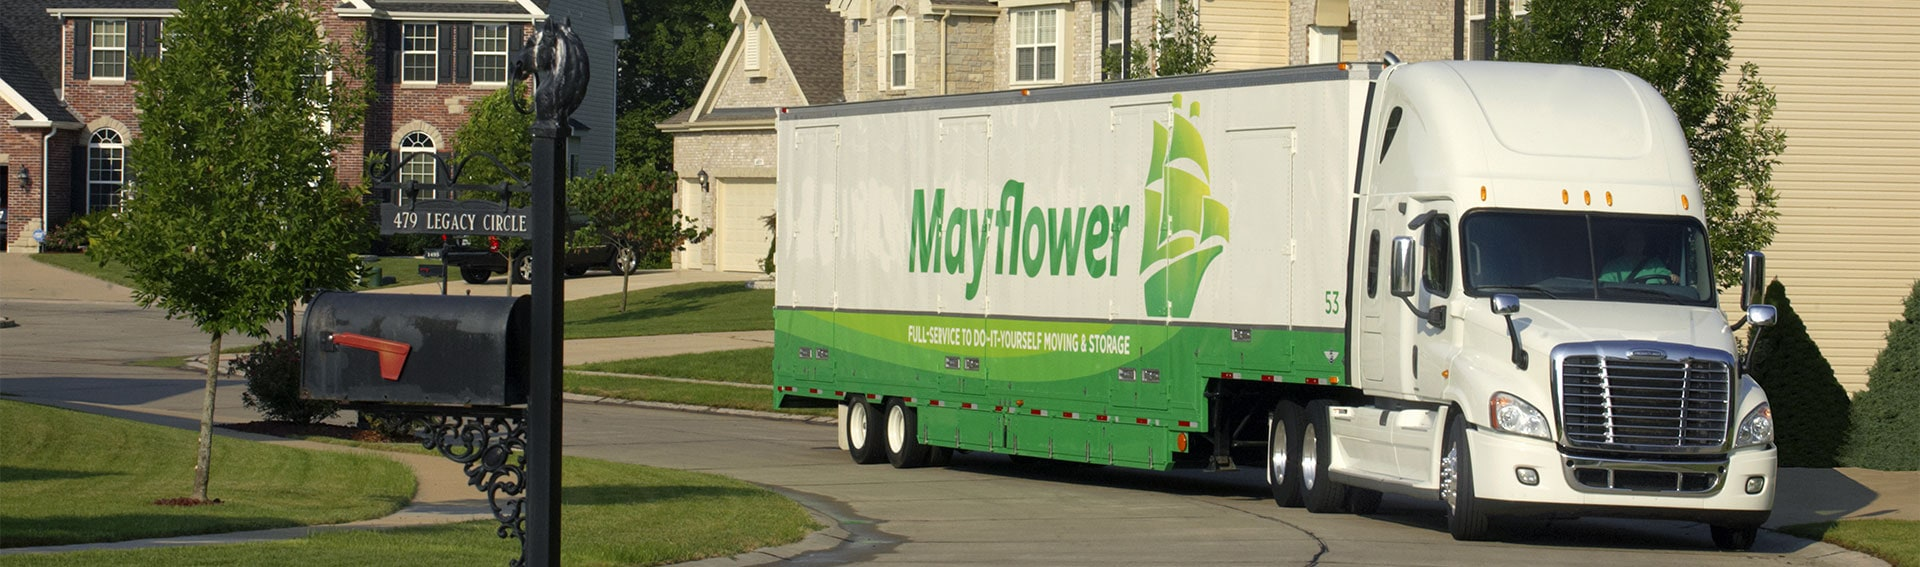 mayflower movers chicago